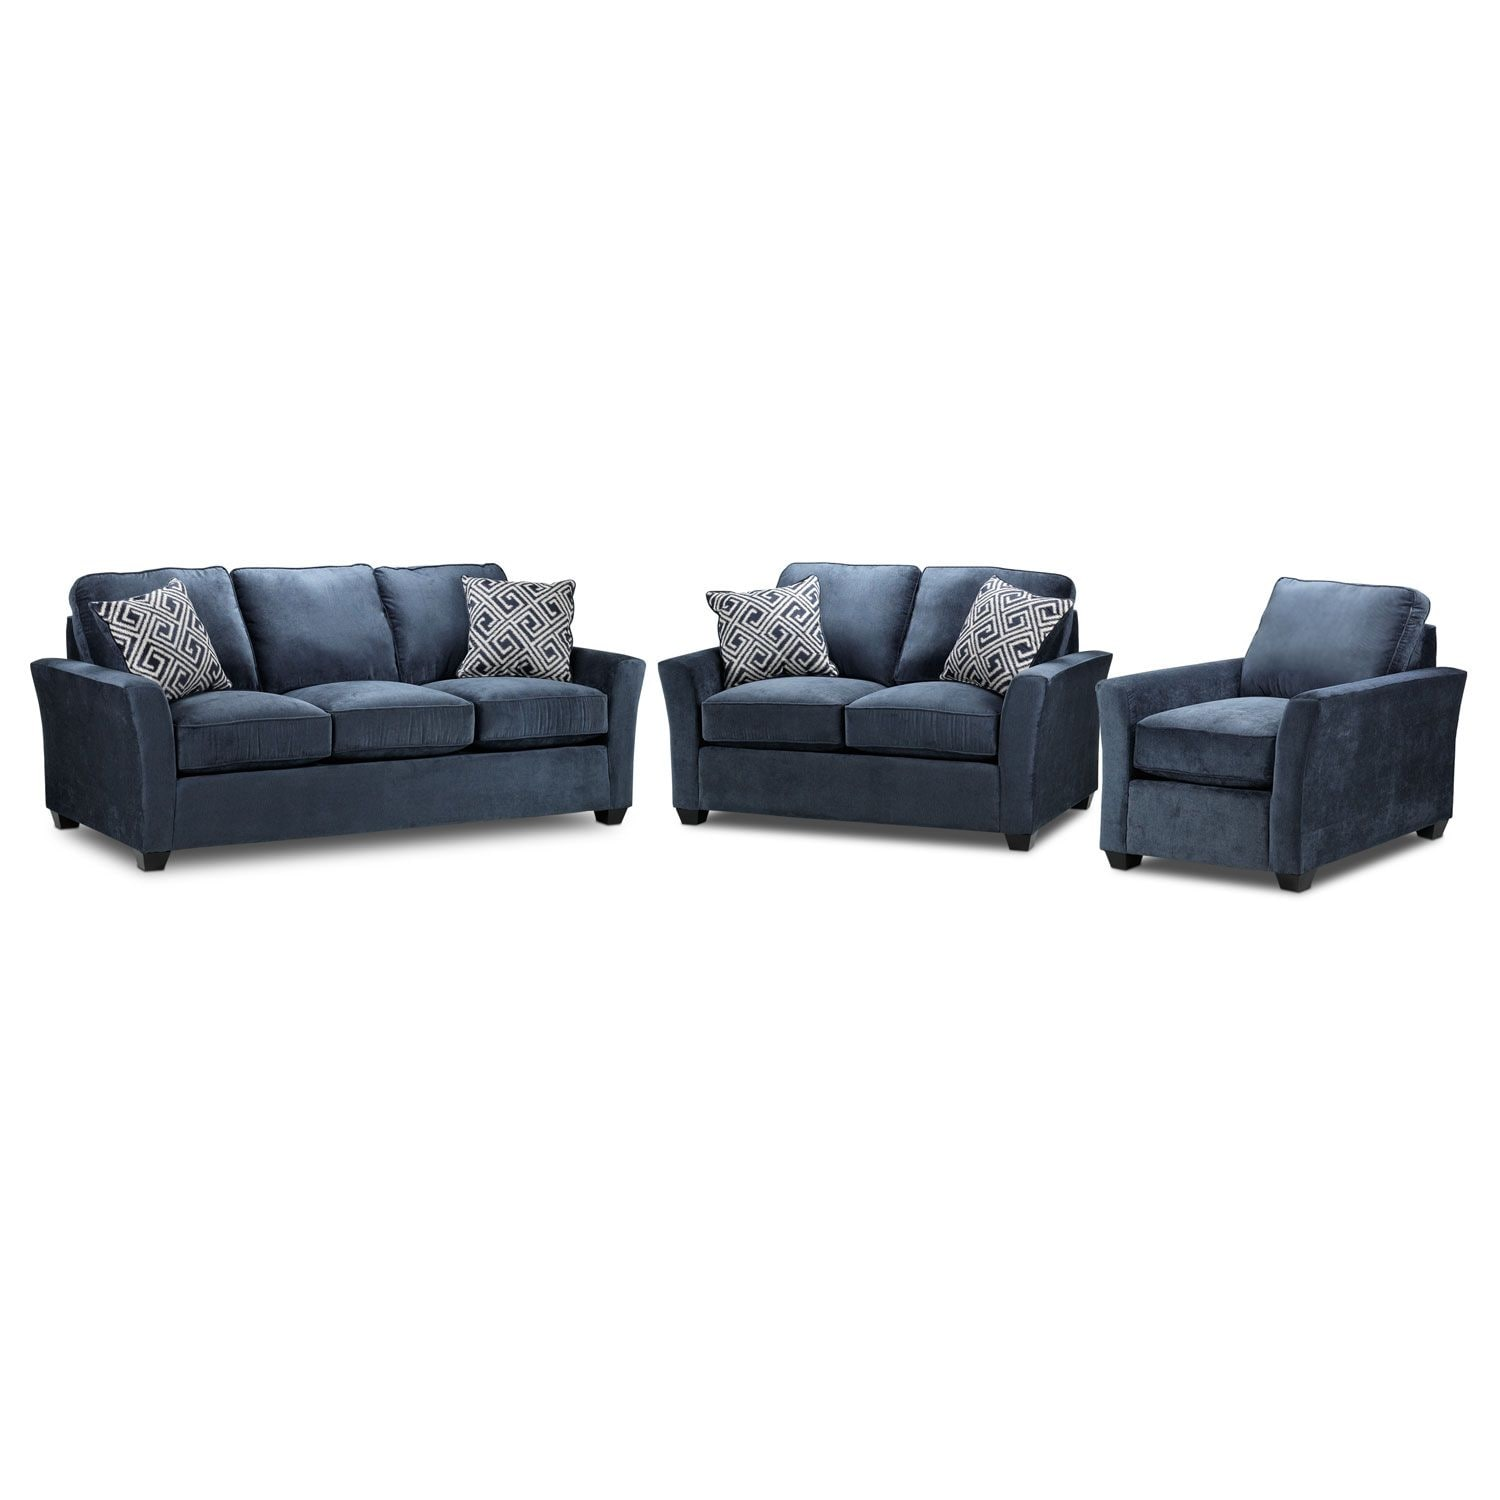 Living Room Furniture - Adalyn Sofa, Loveseat and Chair Package